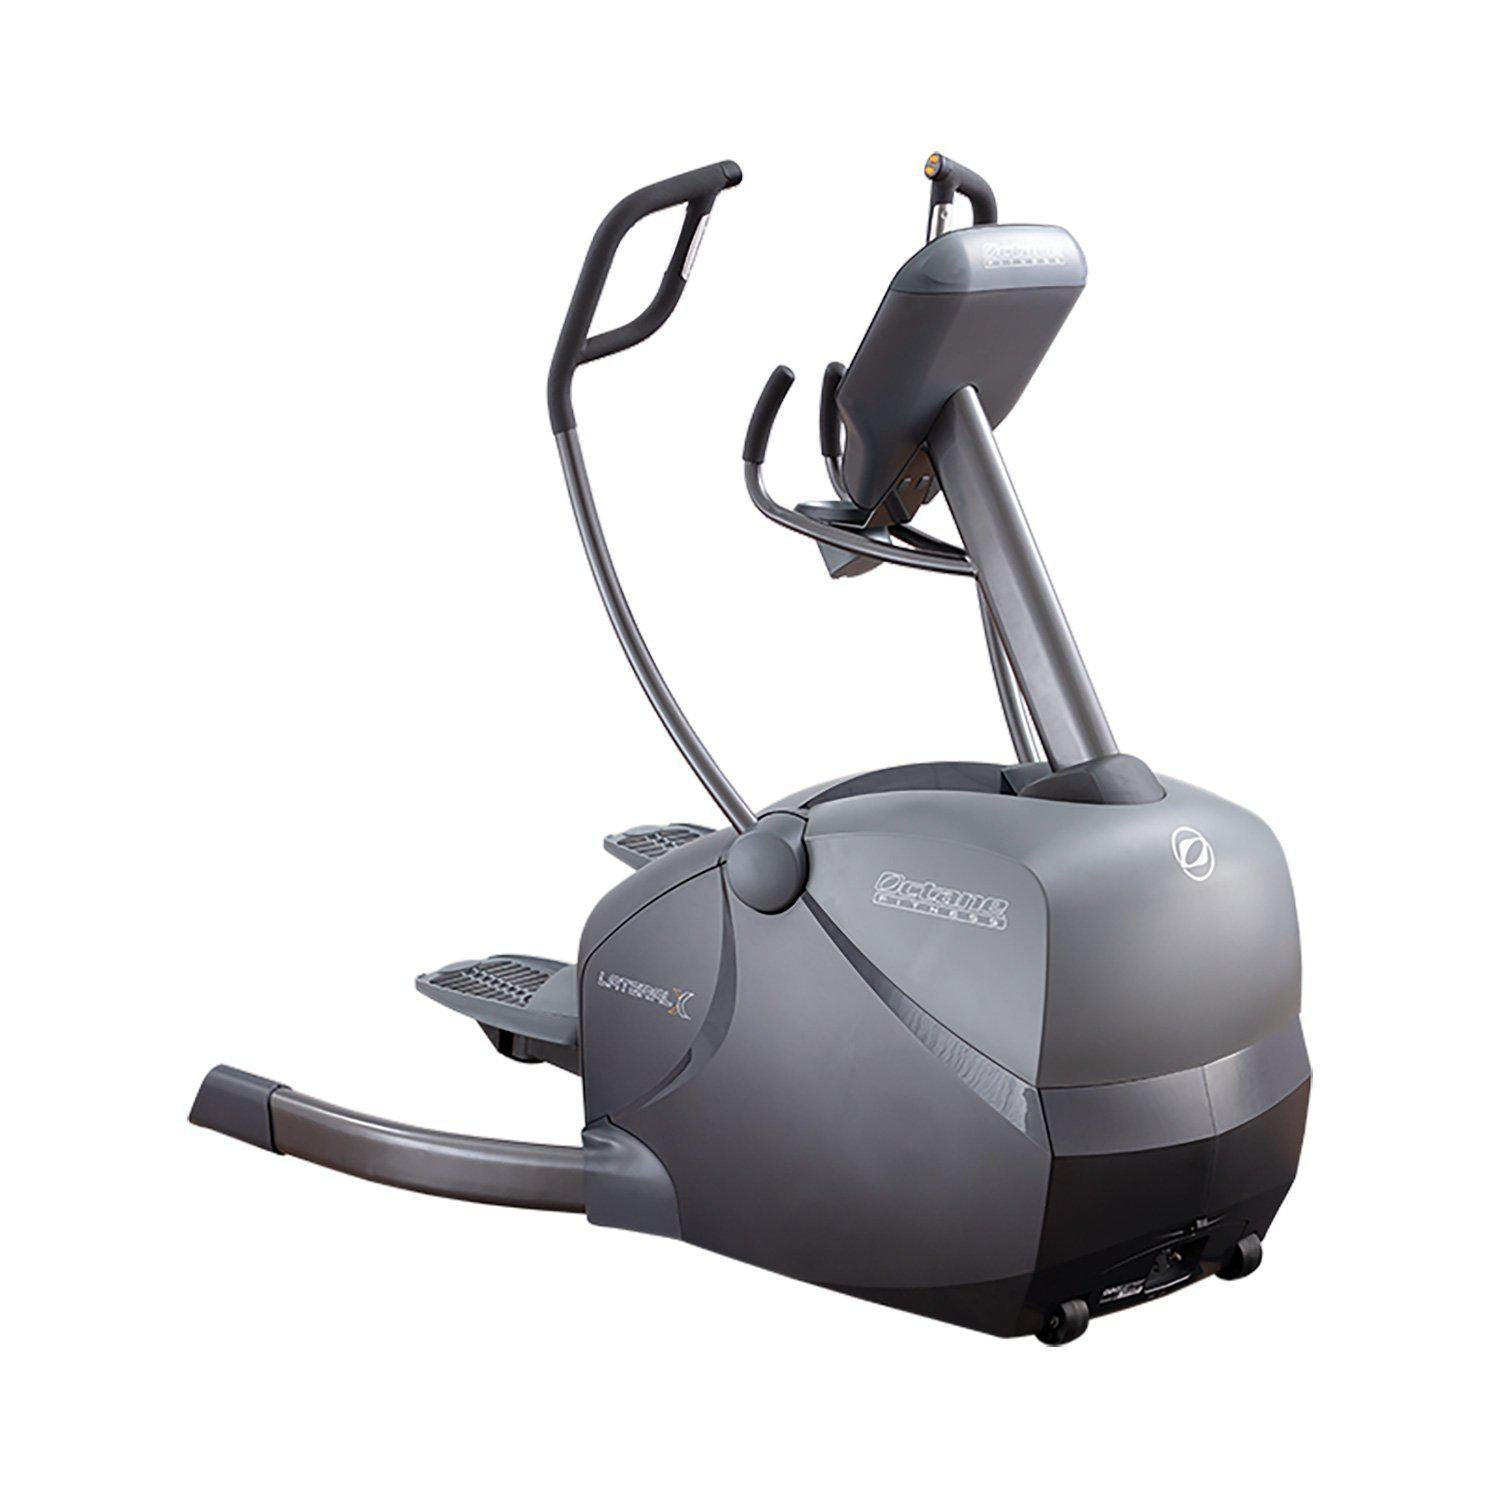 Octane LX8000 Lateral X Elliptical Cross Trainer-Cross Trainer-Octane-Cardio Online